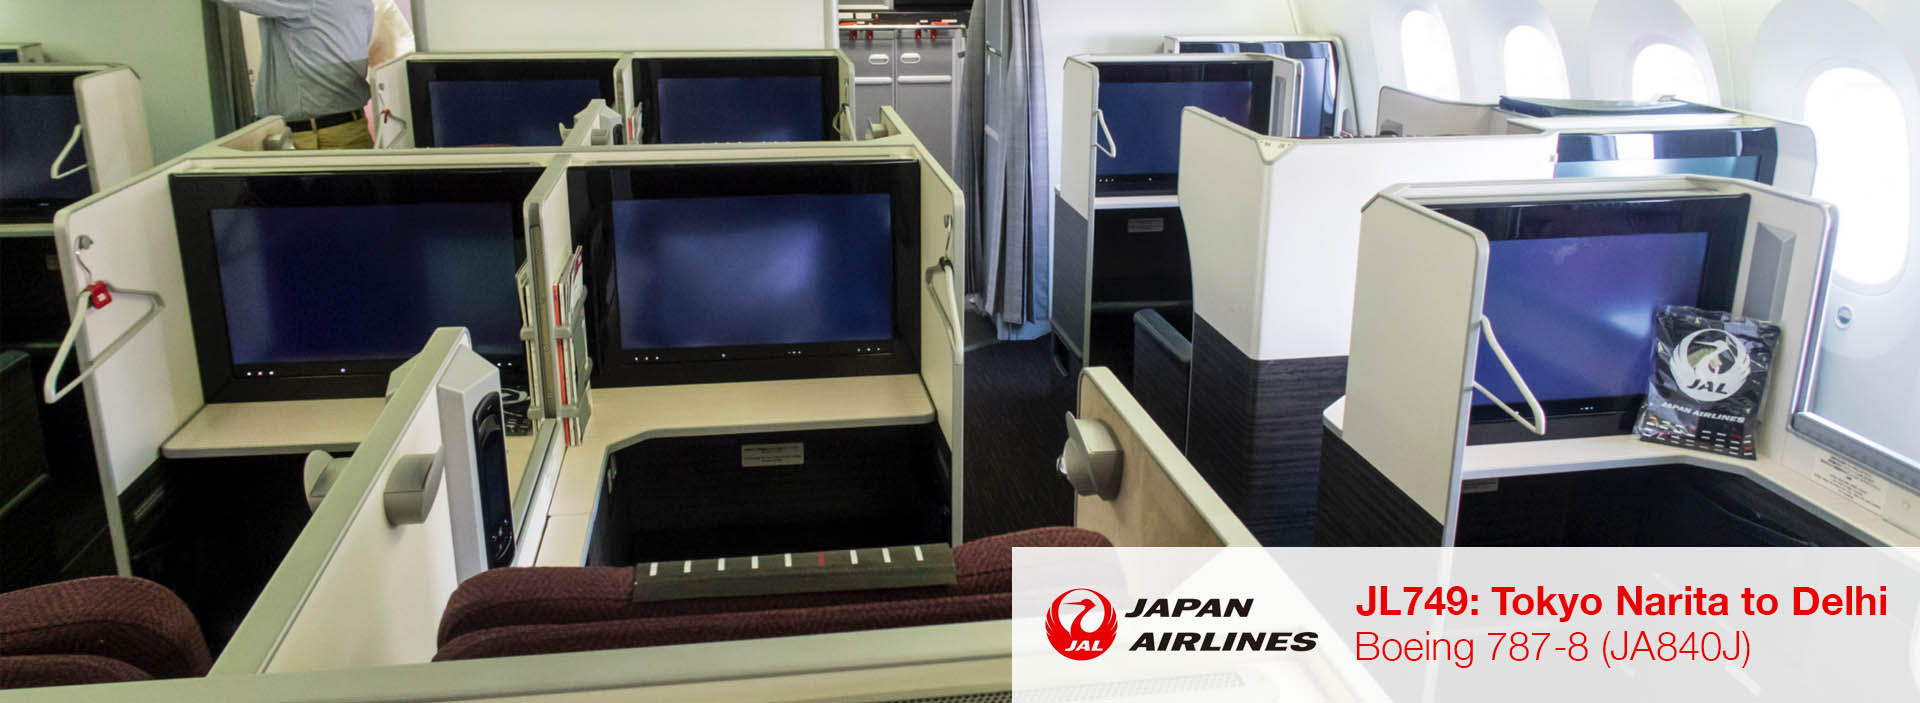 Flight Review: JAL 787-8 Apex Suite Business Class from Tokyo Narita to Delhi